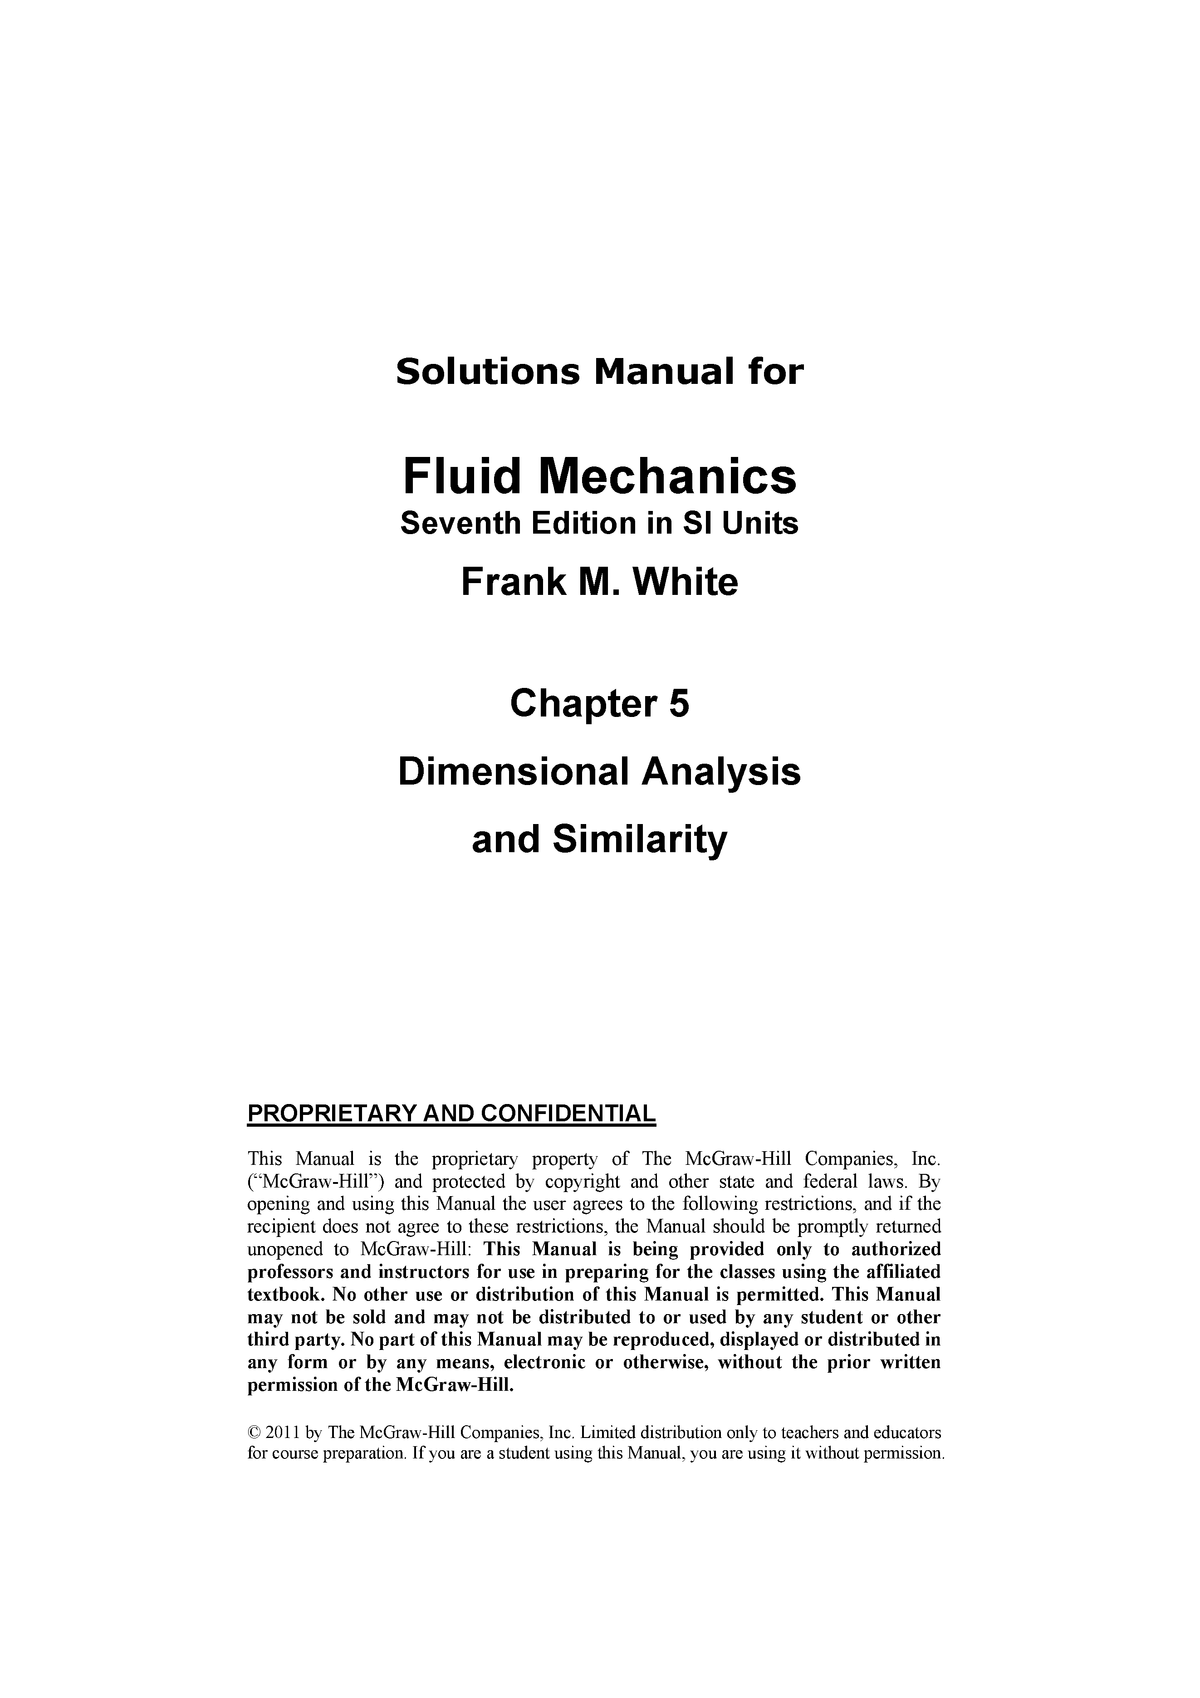 7e Chp5SMIT - Solution manual Fluid Mechanics - StuDocu